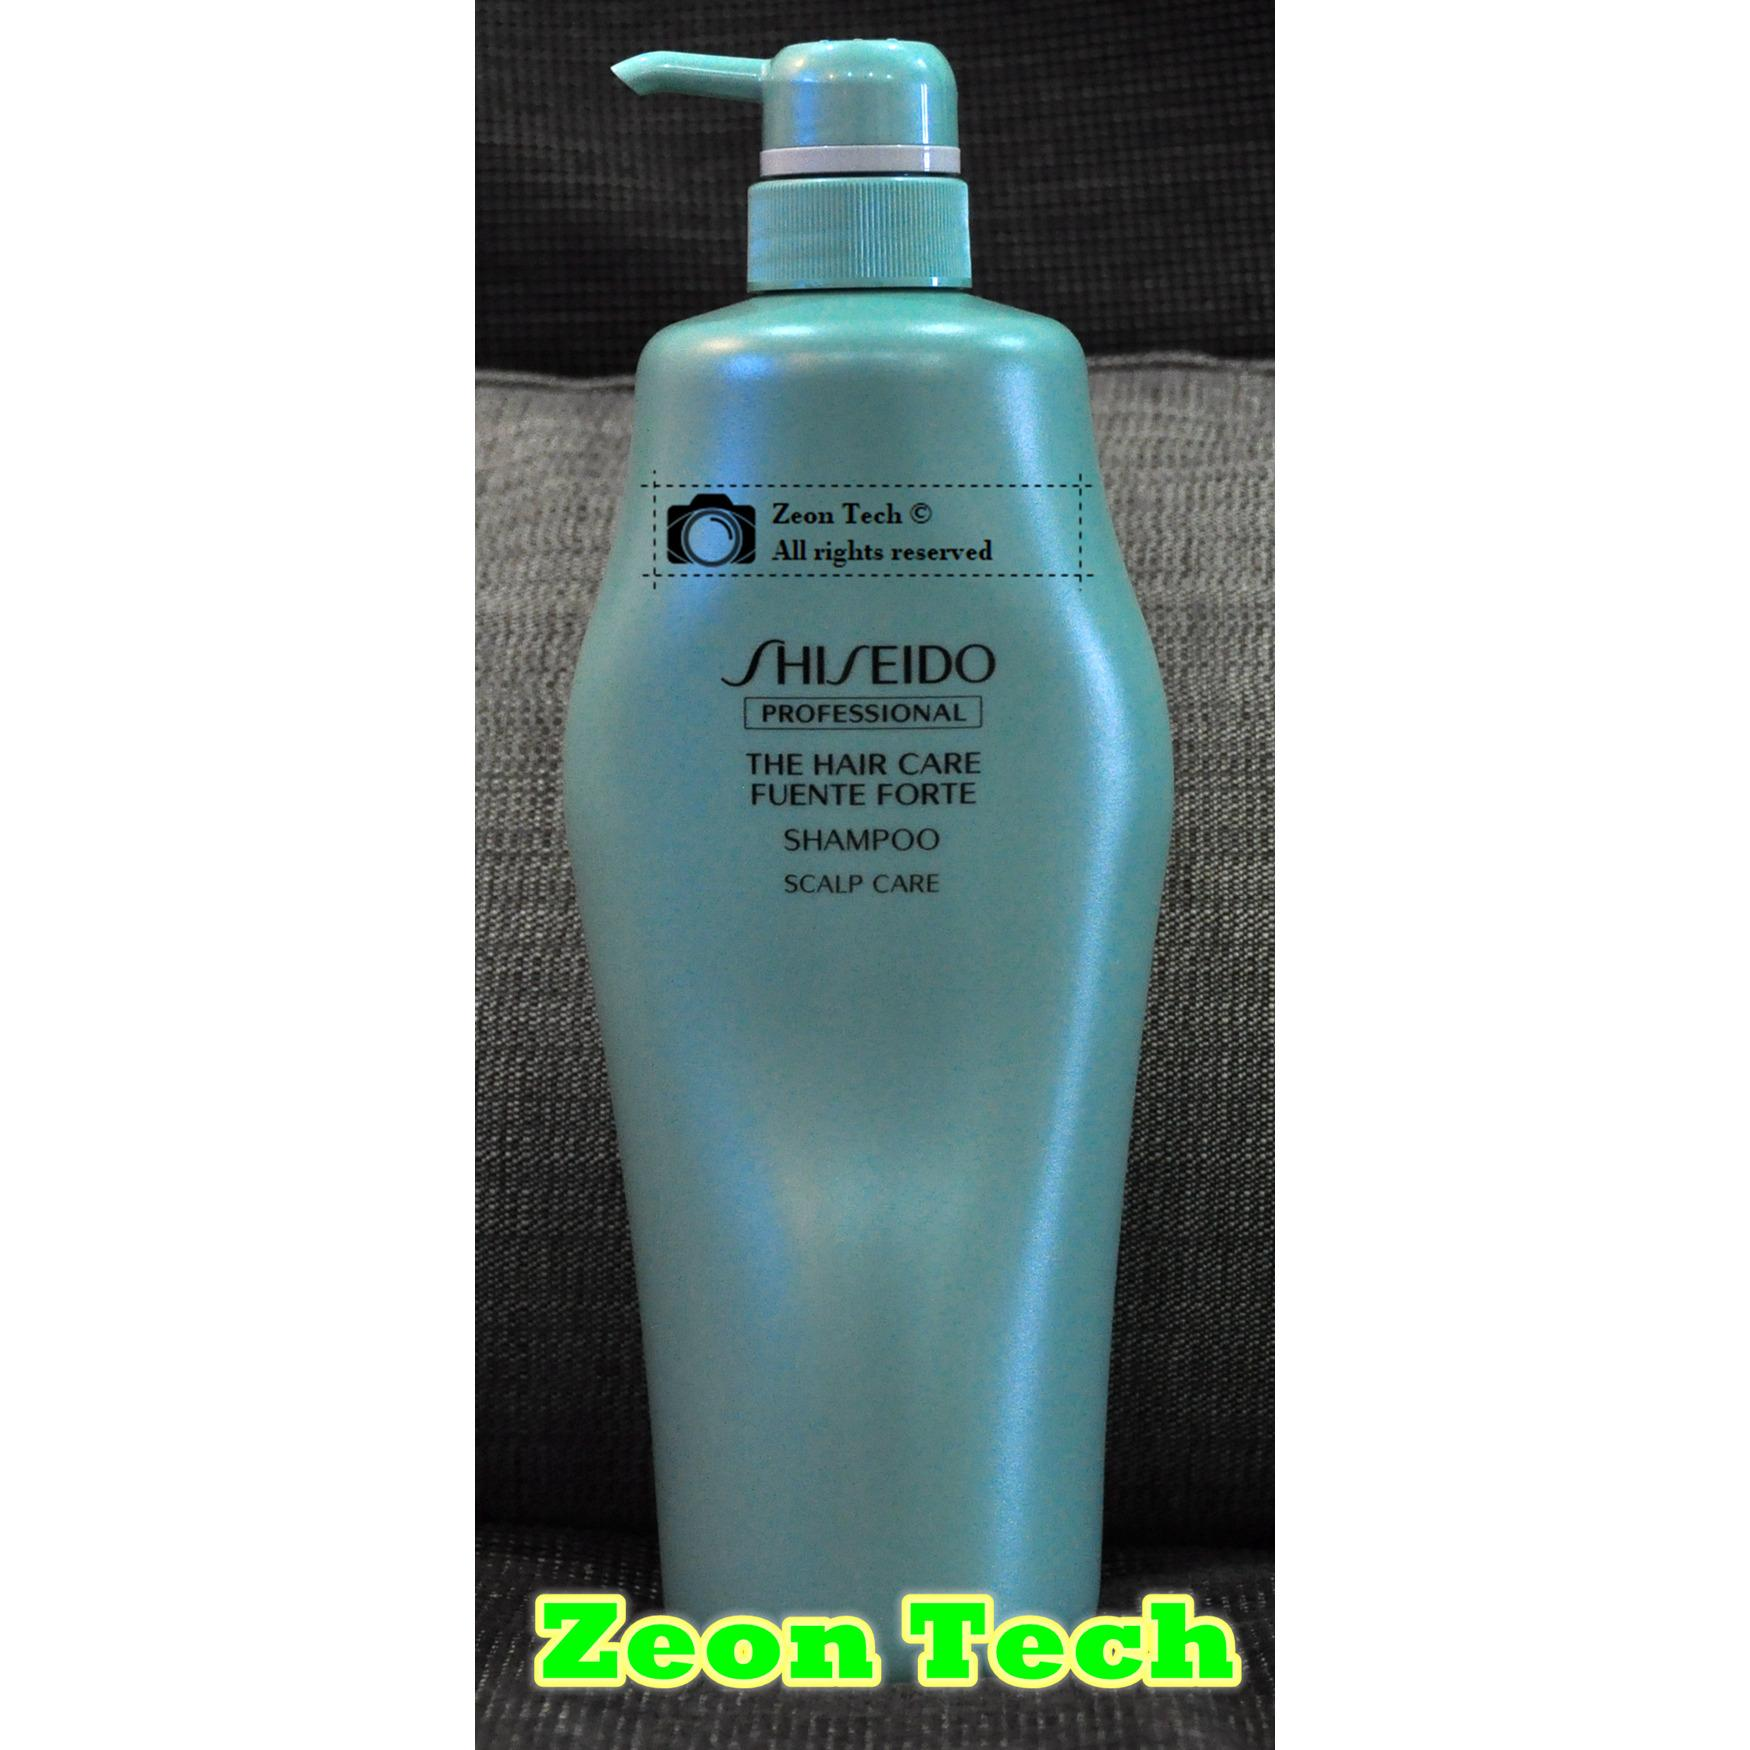 SHISEIDO Professional Fuente Forte Shampoo 1000mL [MADE IN JAPAN] [FREE SHIPPING]